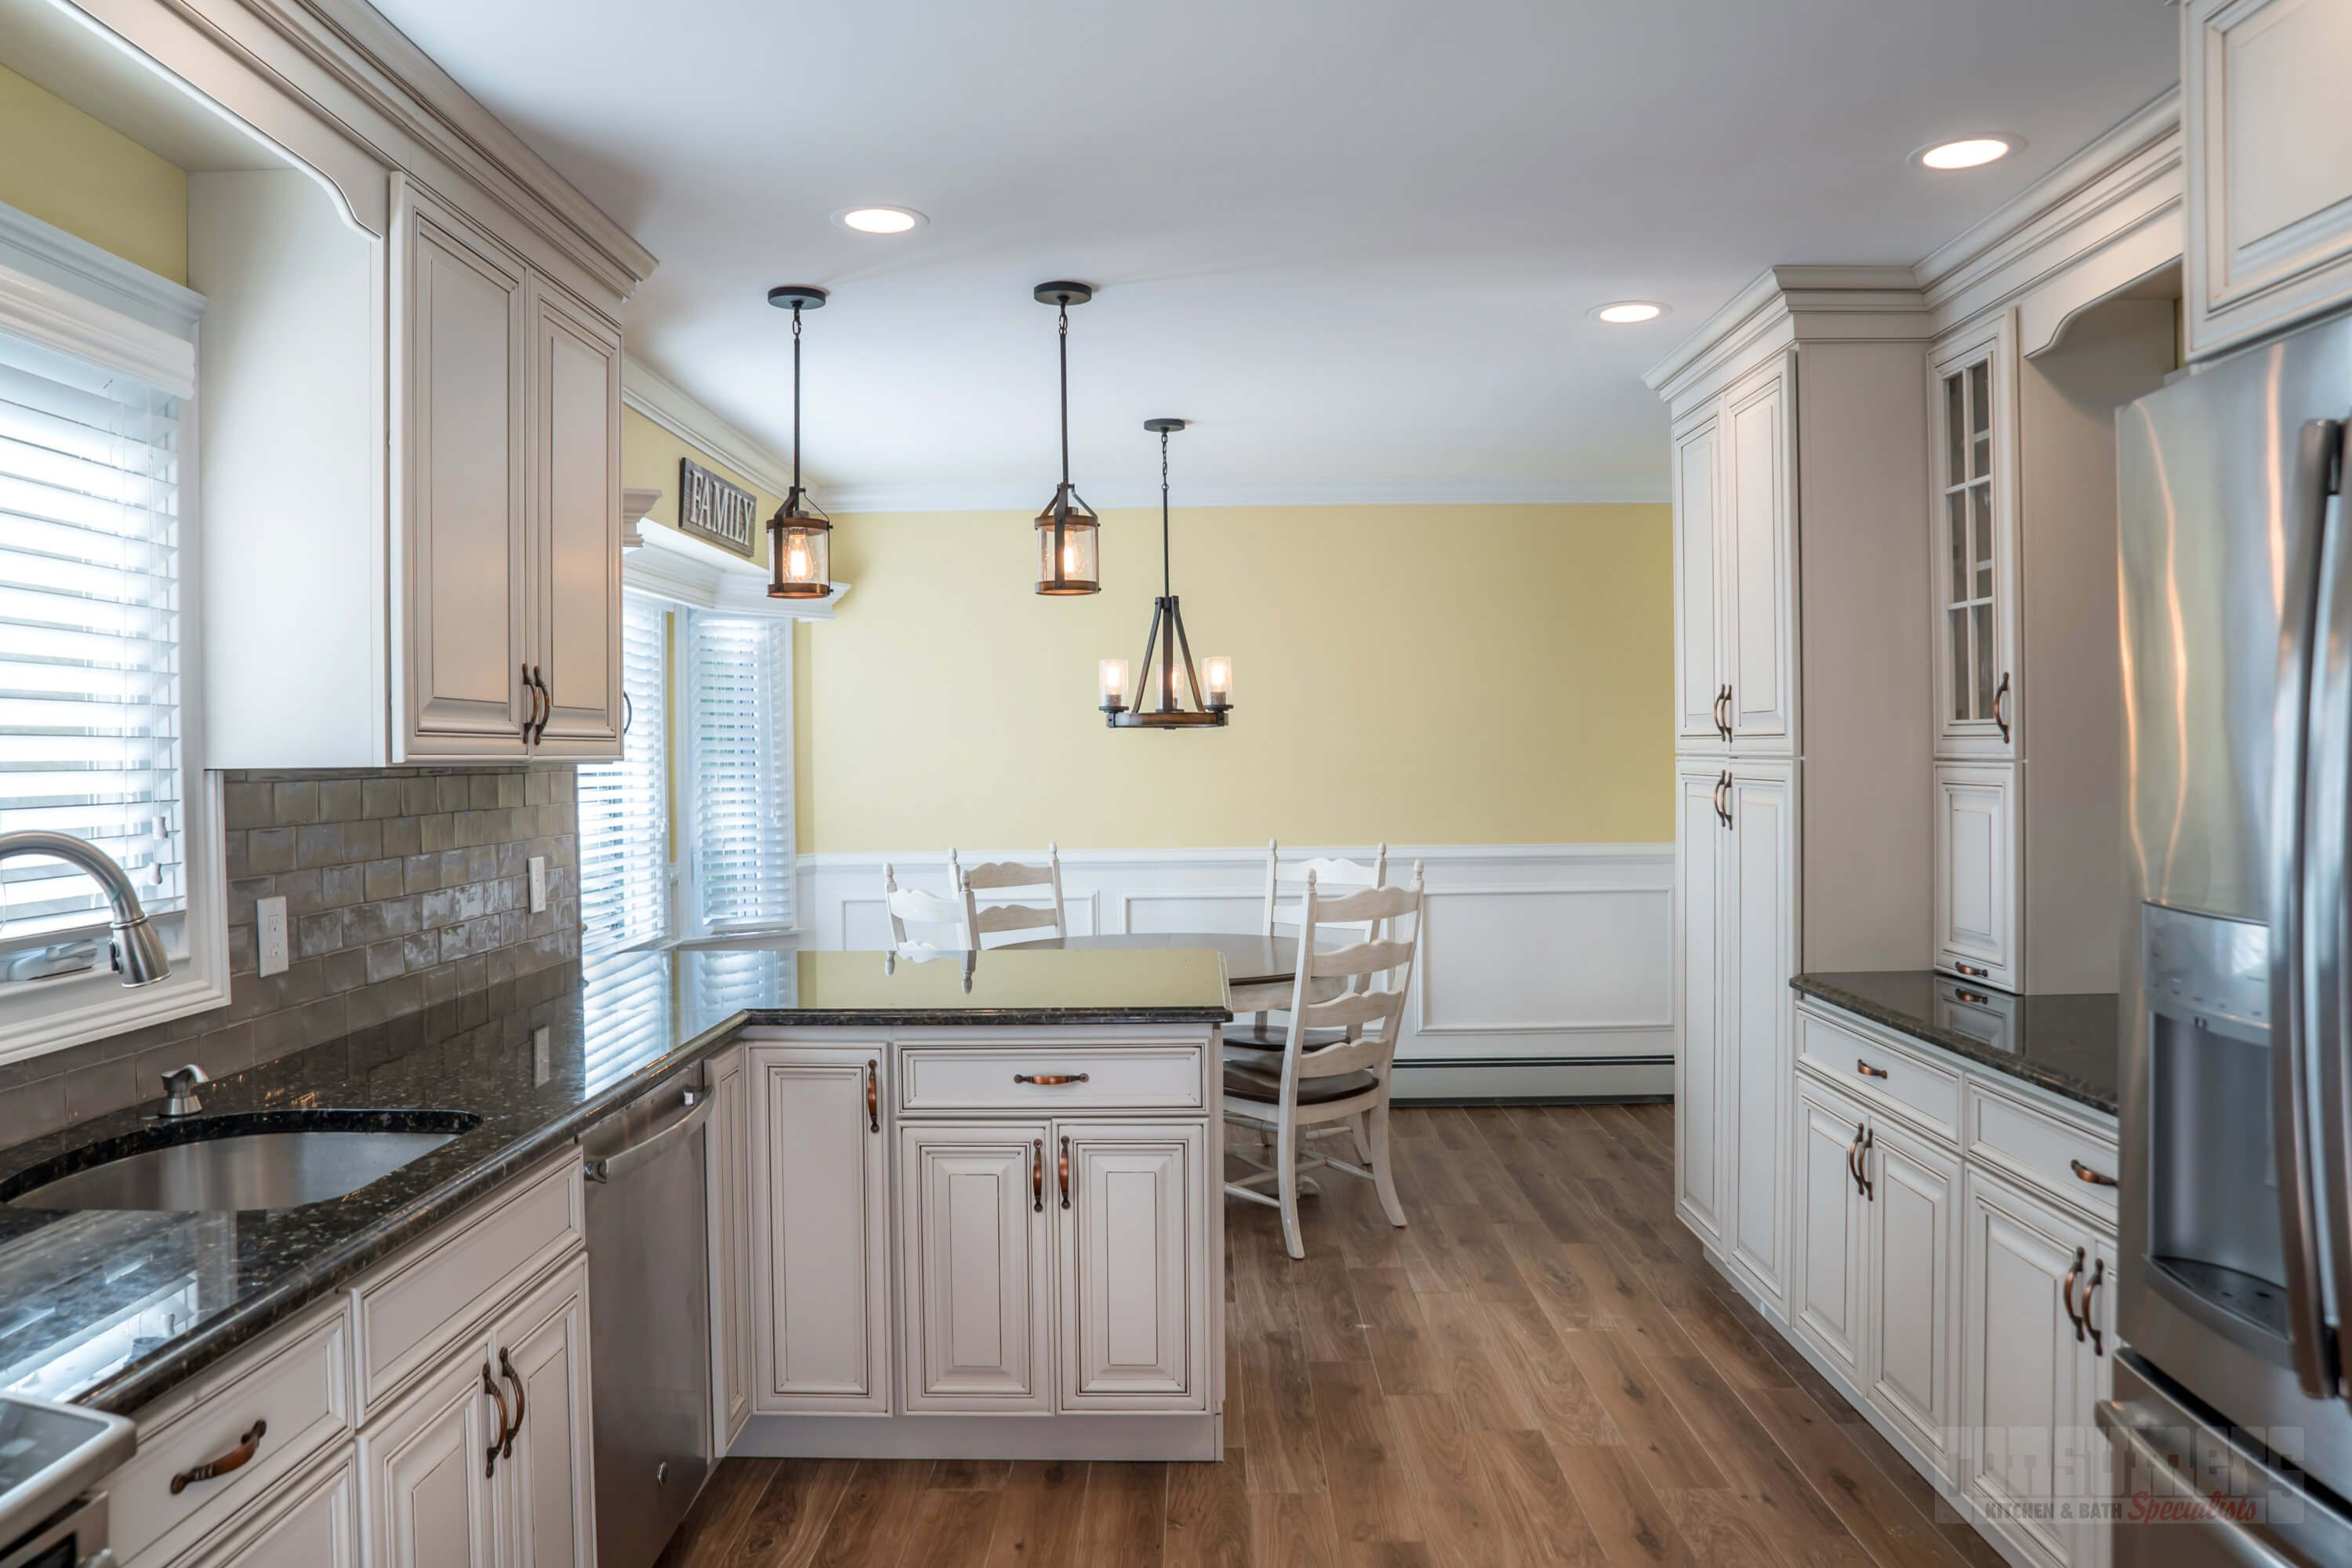 This maple kitchen was designed with Starmark